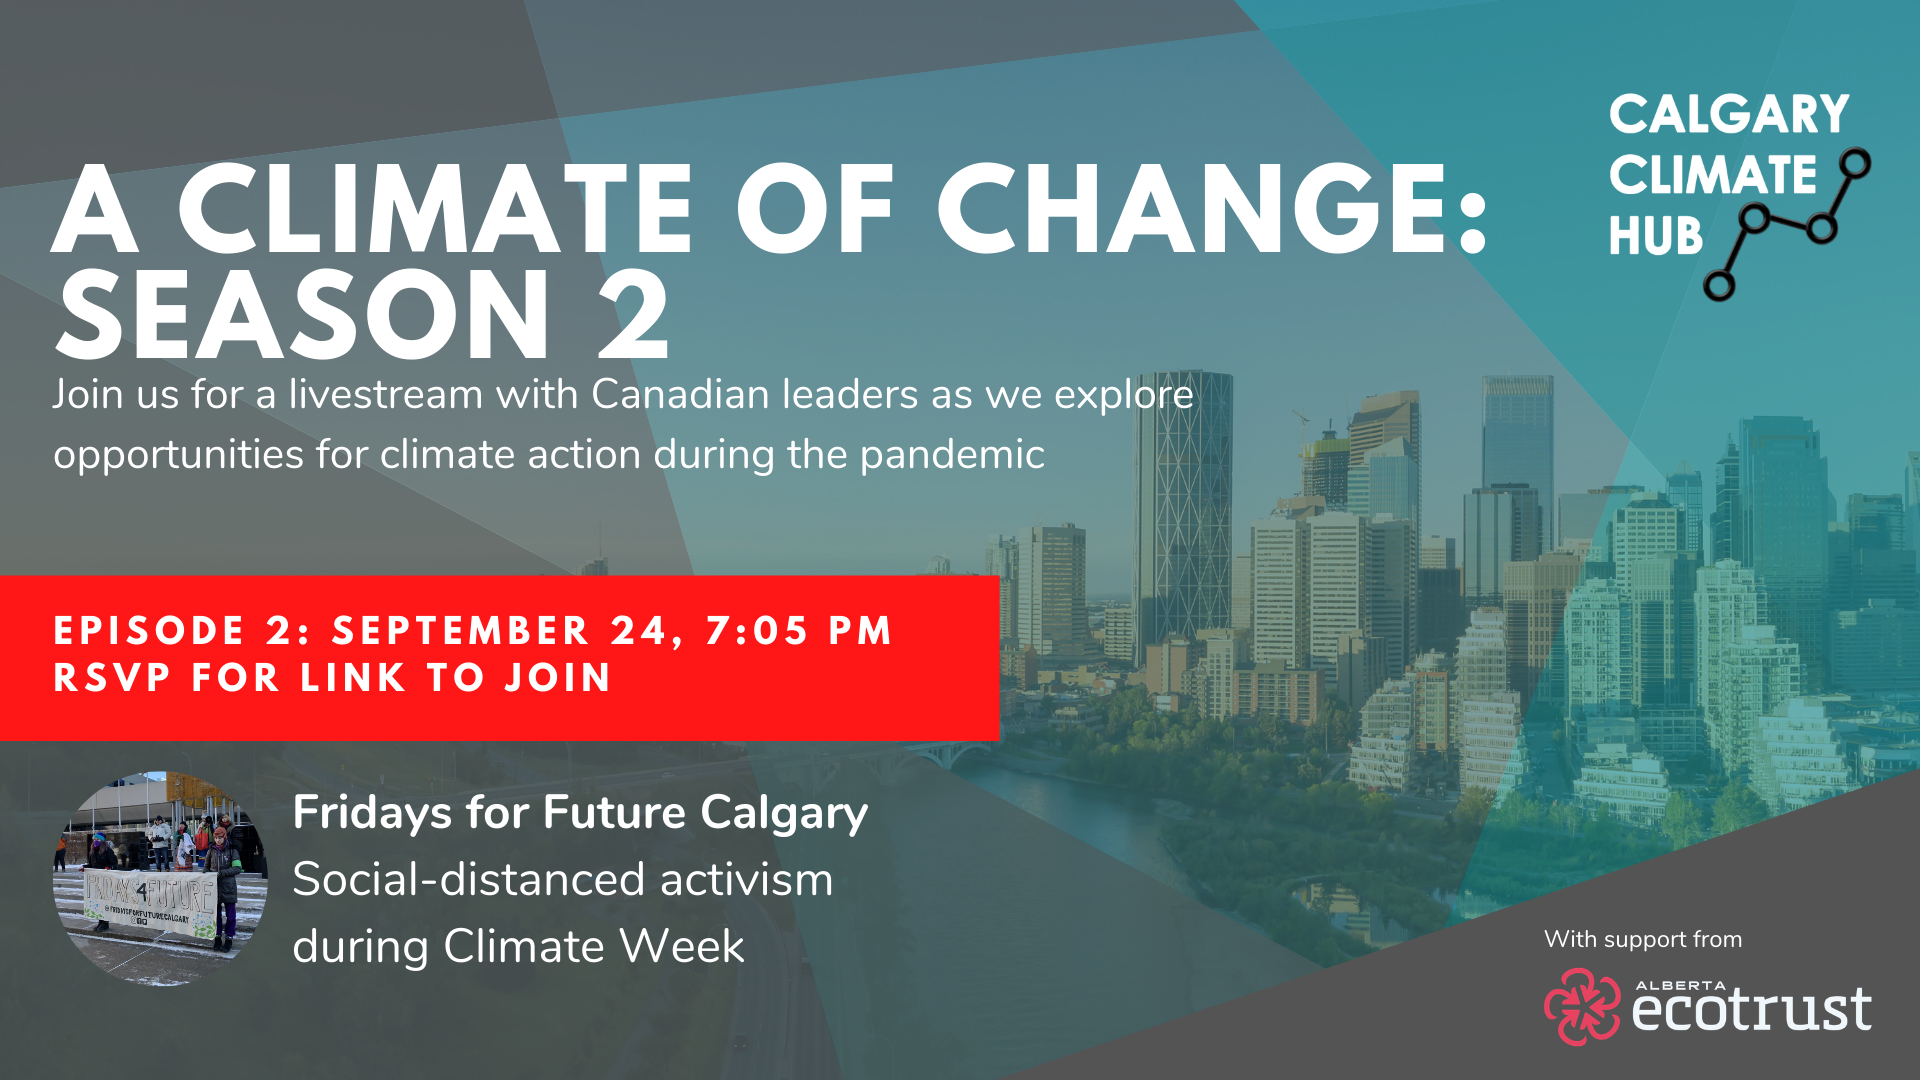 Poster for A Climate of Change Season 2 Episode 2 with Fridays for Future Calgary